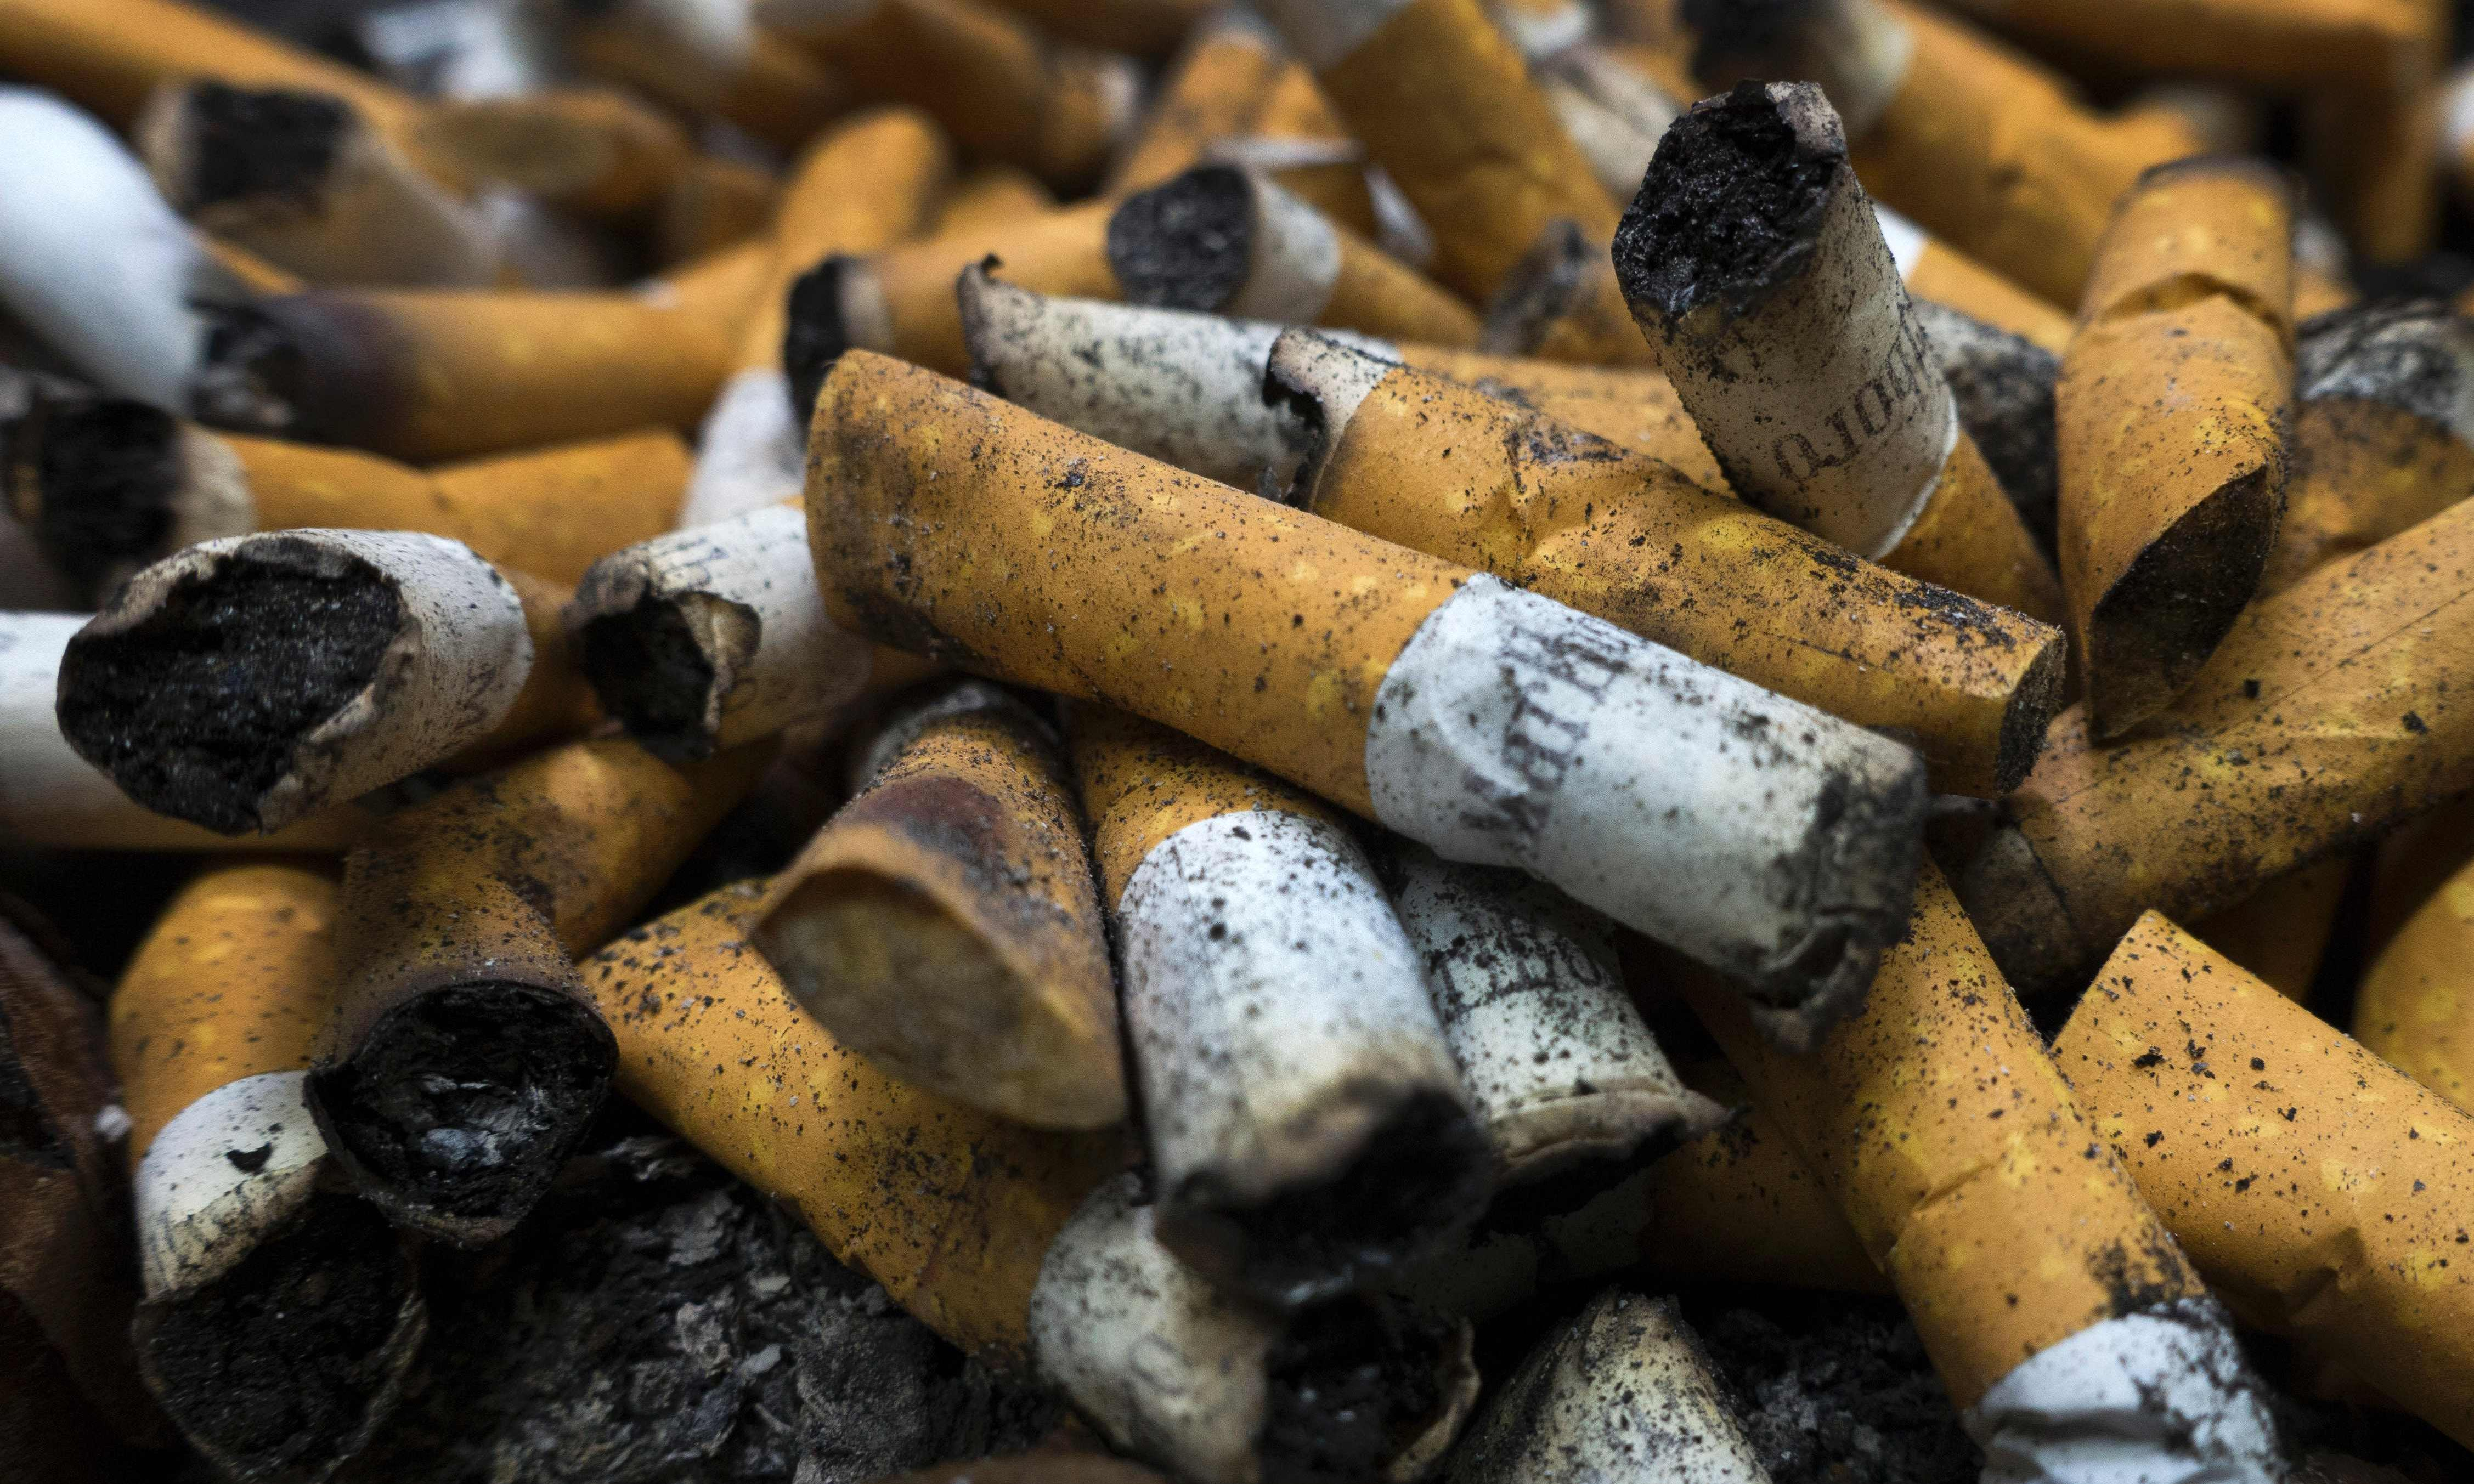 £6bn UK pension scheme moves to stub out tobacco